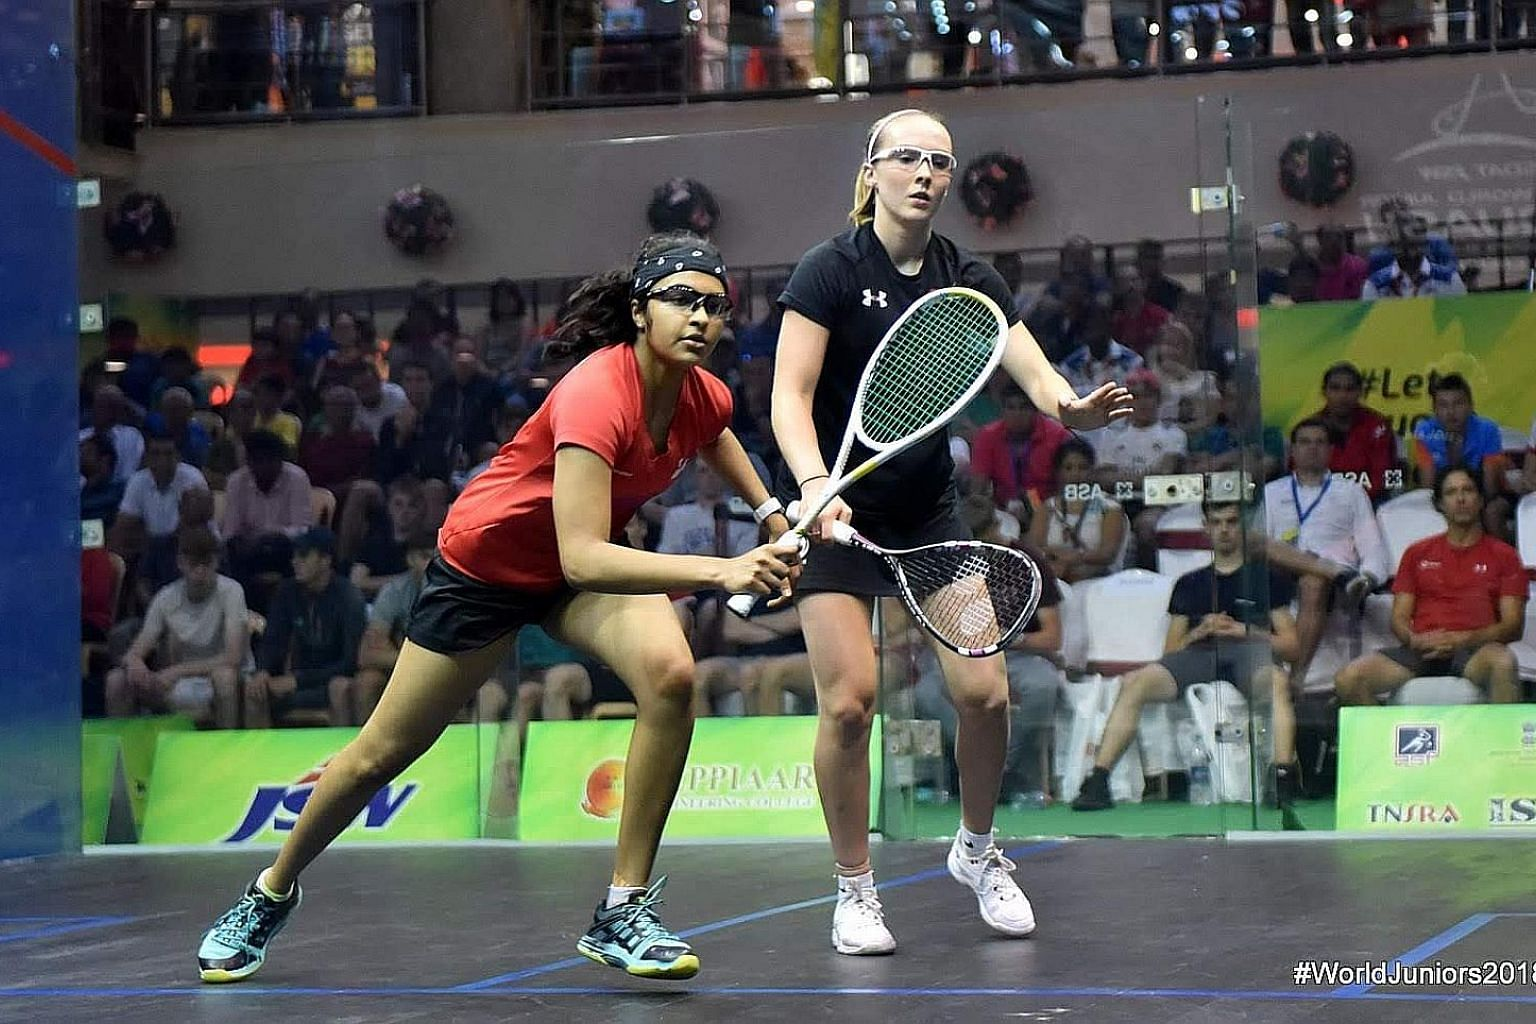 Singapore squash player Sneha Sivakumar reaching for a backhand return in her loss to English third seed Lucy Turmel in the quarter-finals of the tournament in Chennai.